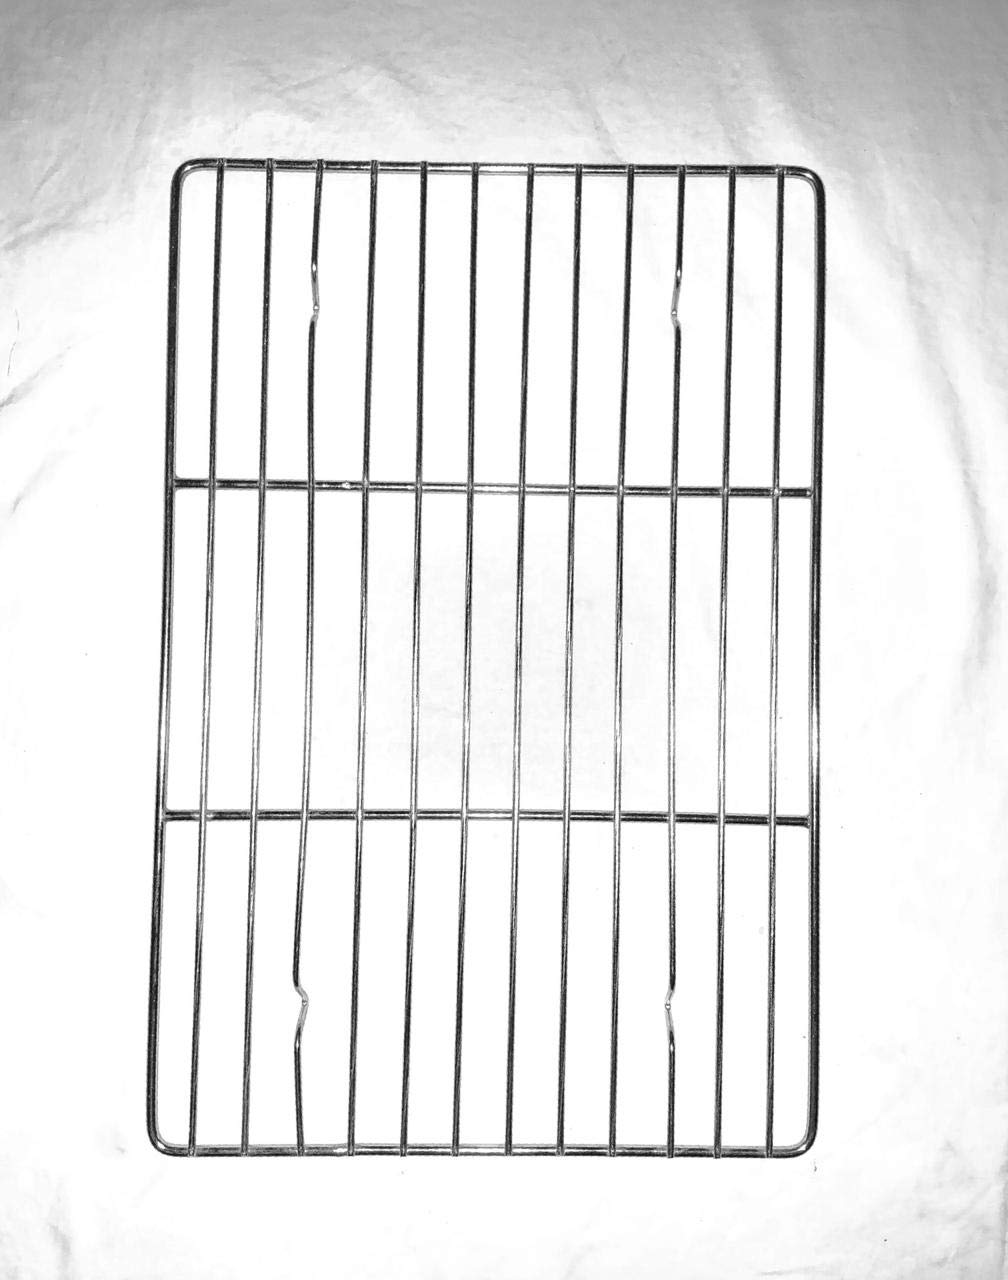 BAKERY HUB Stainless Steel Cooling/Baking Shelf 35 cm x 45 cm